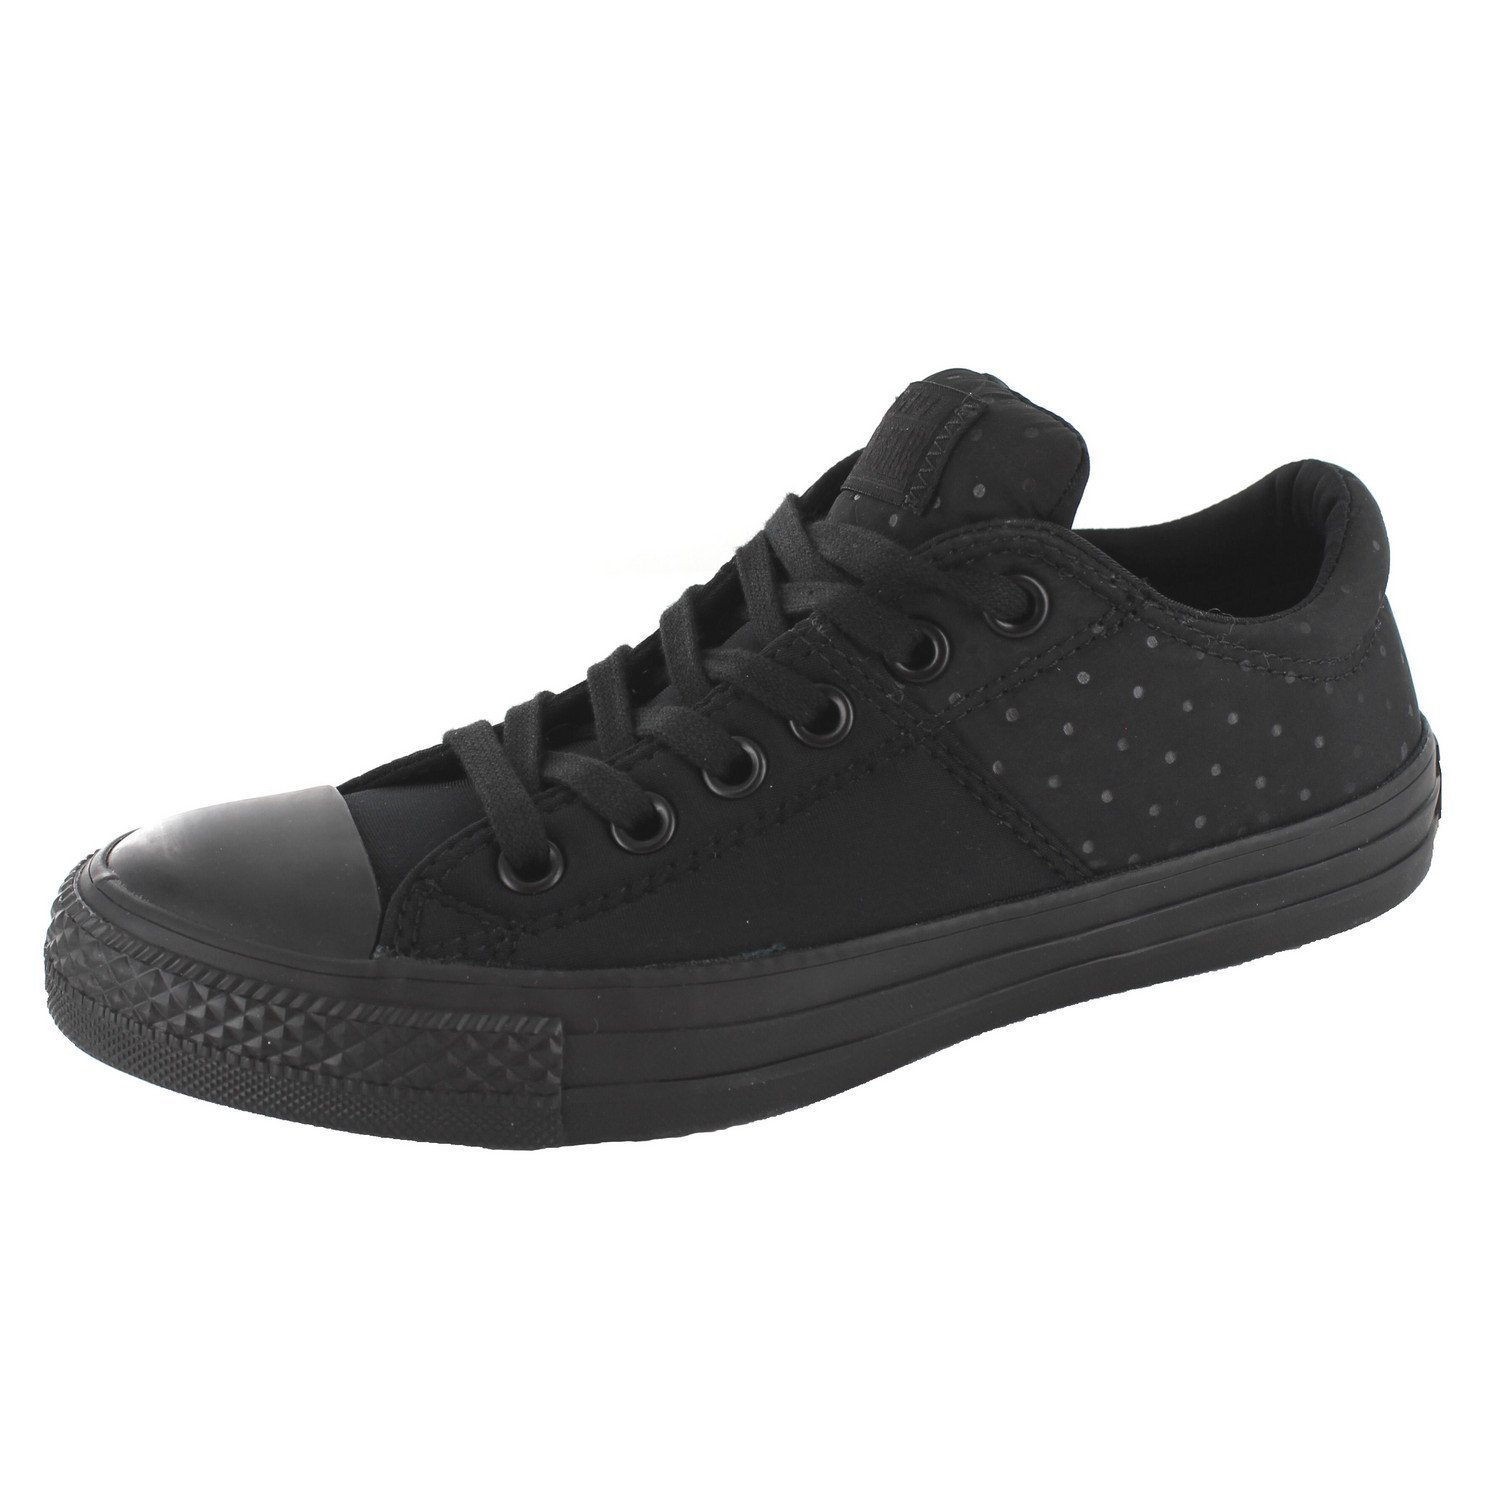 7aa8dfa657c1 Get Quotations · Converse Chuck Taylor All Star Madison Neoprene Ox  Black Black Black Womens Lace up